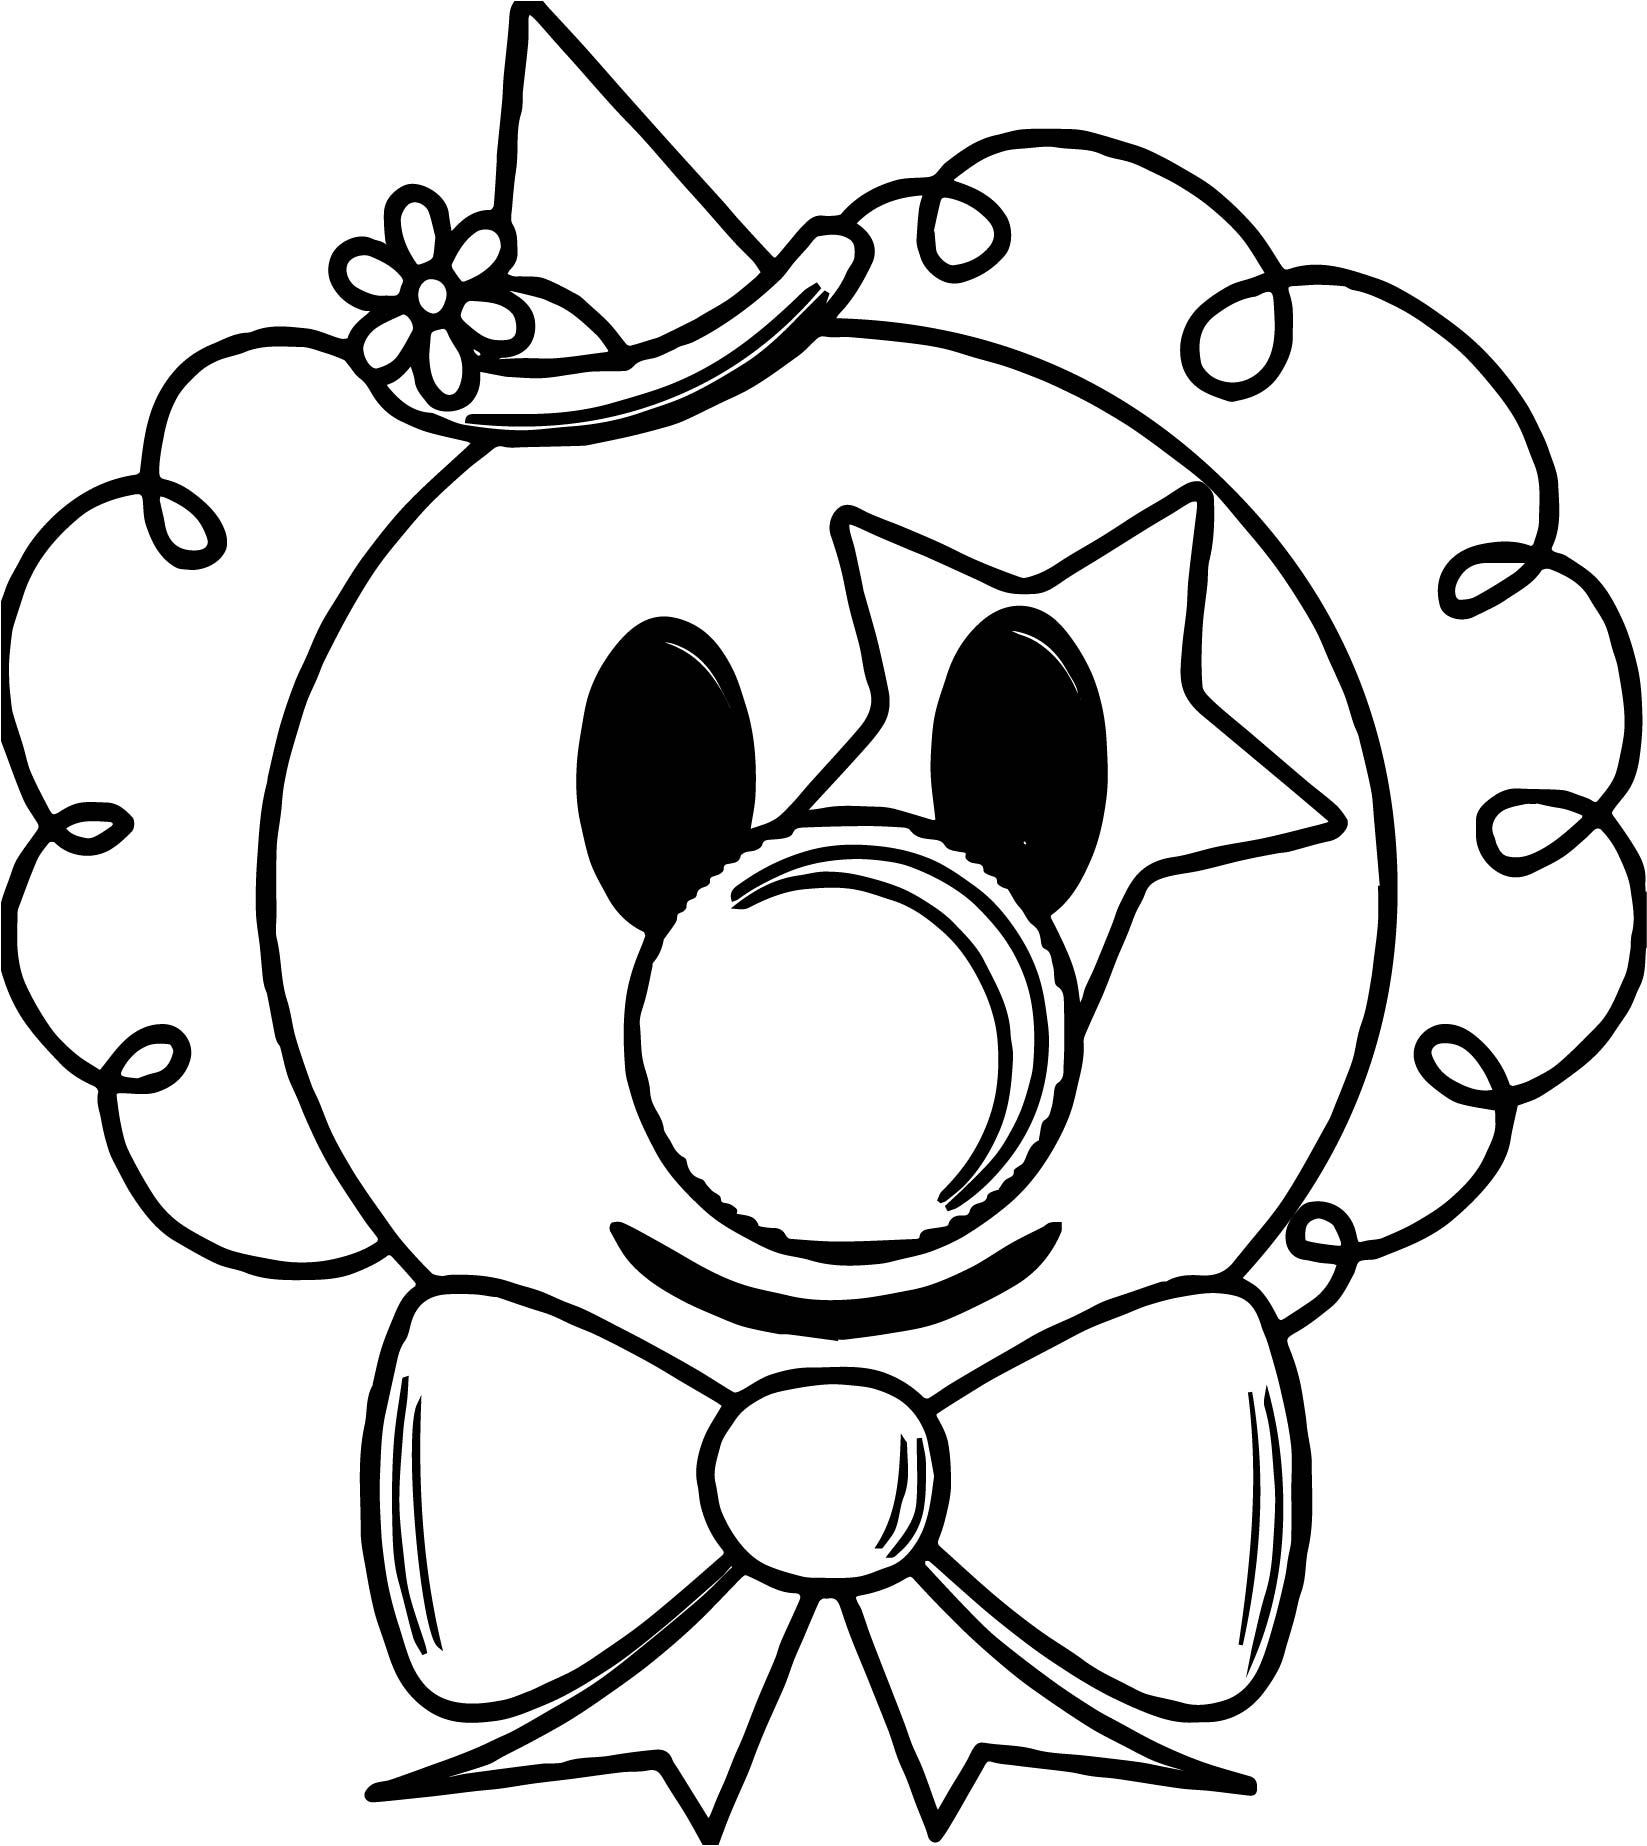 clown face coloring page nice flower clown face coloring page clown crafts clown face page clown coloring